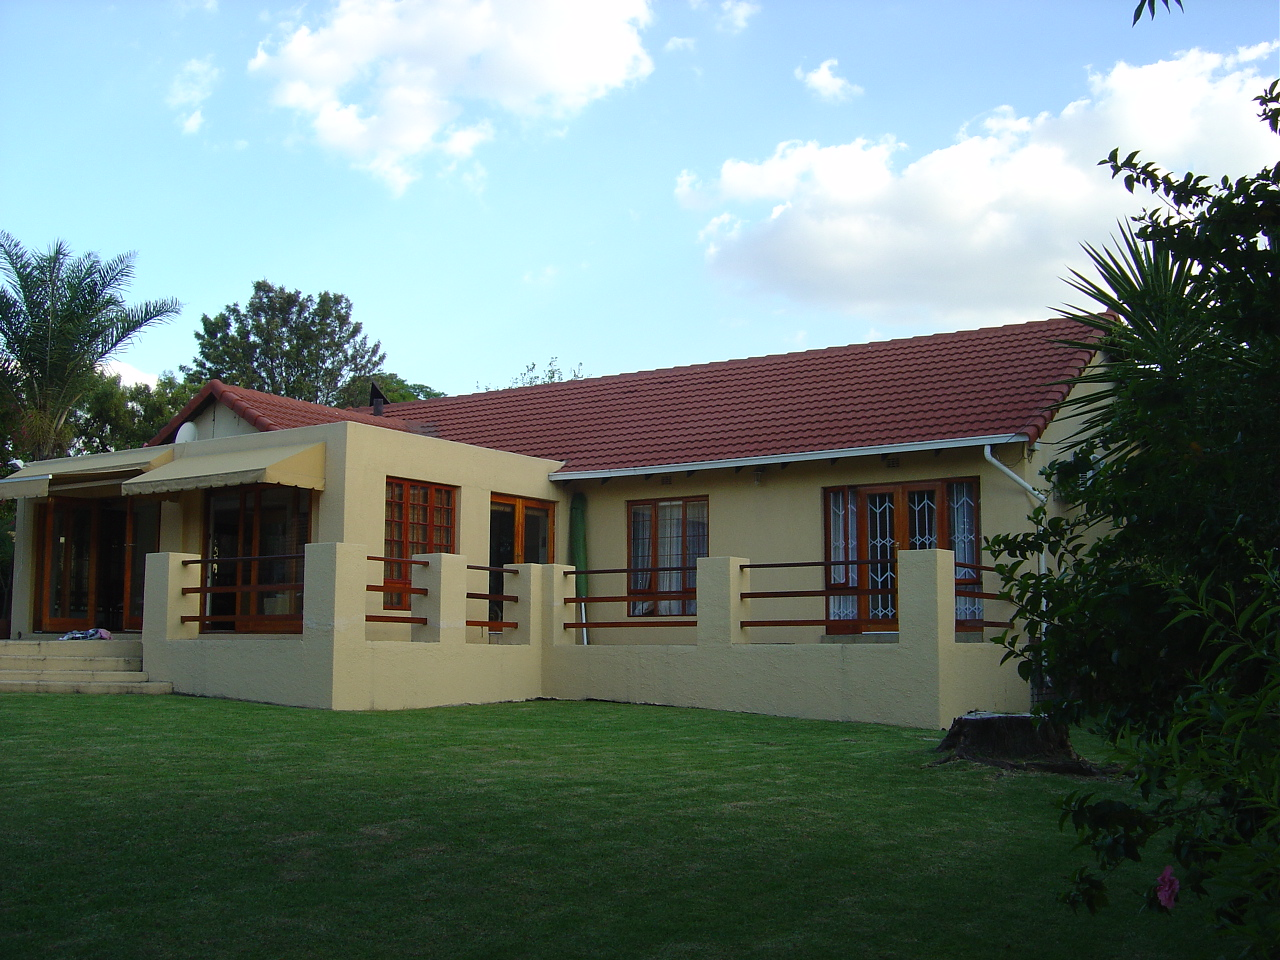 Homes for sale south africa houses for sale south africa for Housse for sale